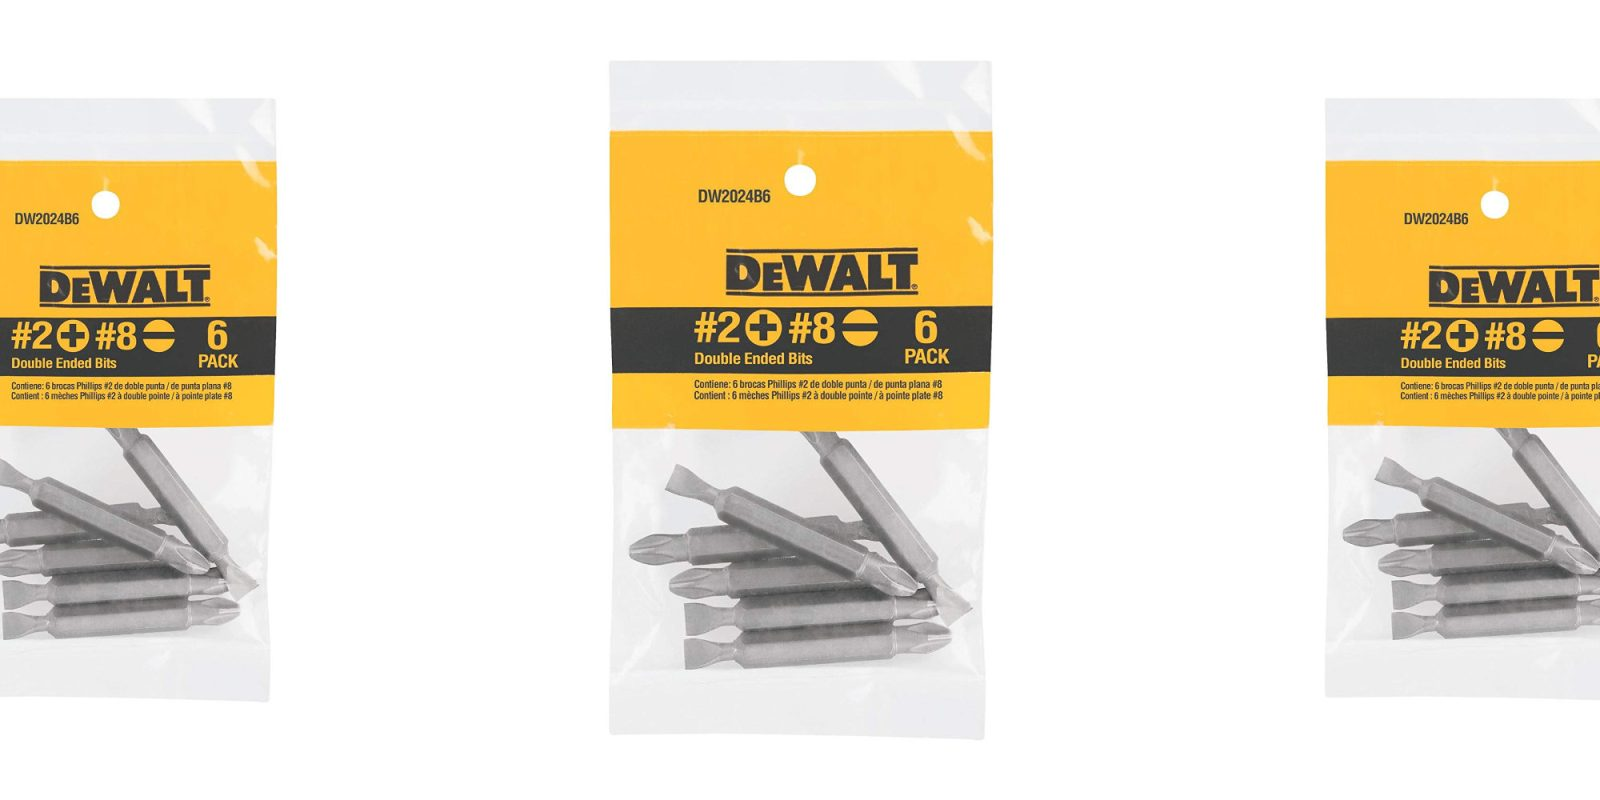 Score six DEWALT Double-Ended Bits for only $3 at Amazon (Save 40%)